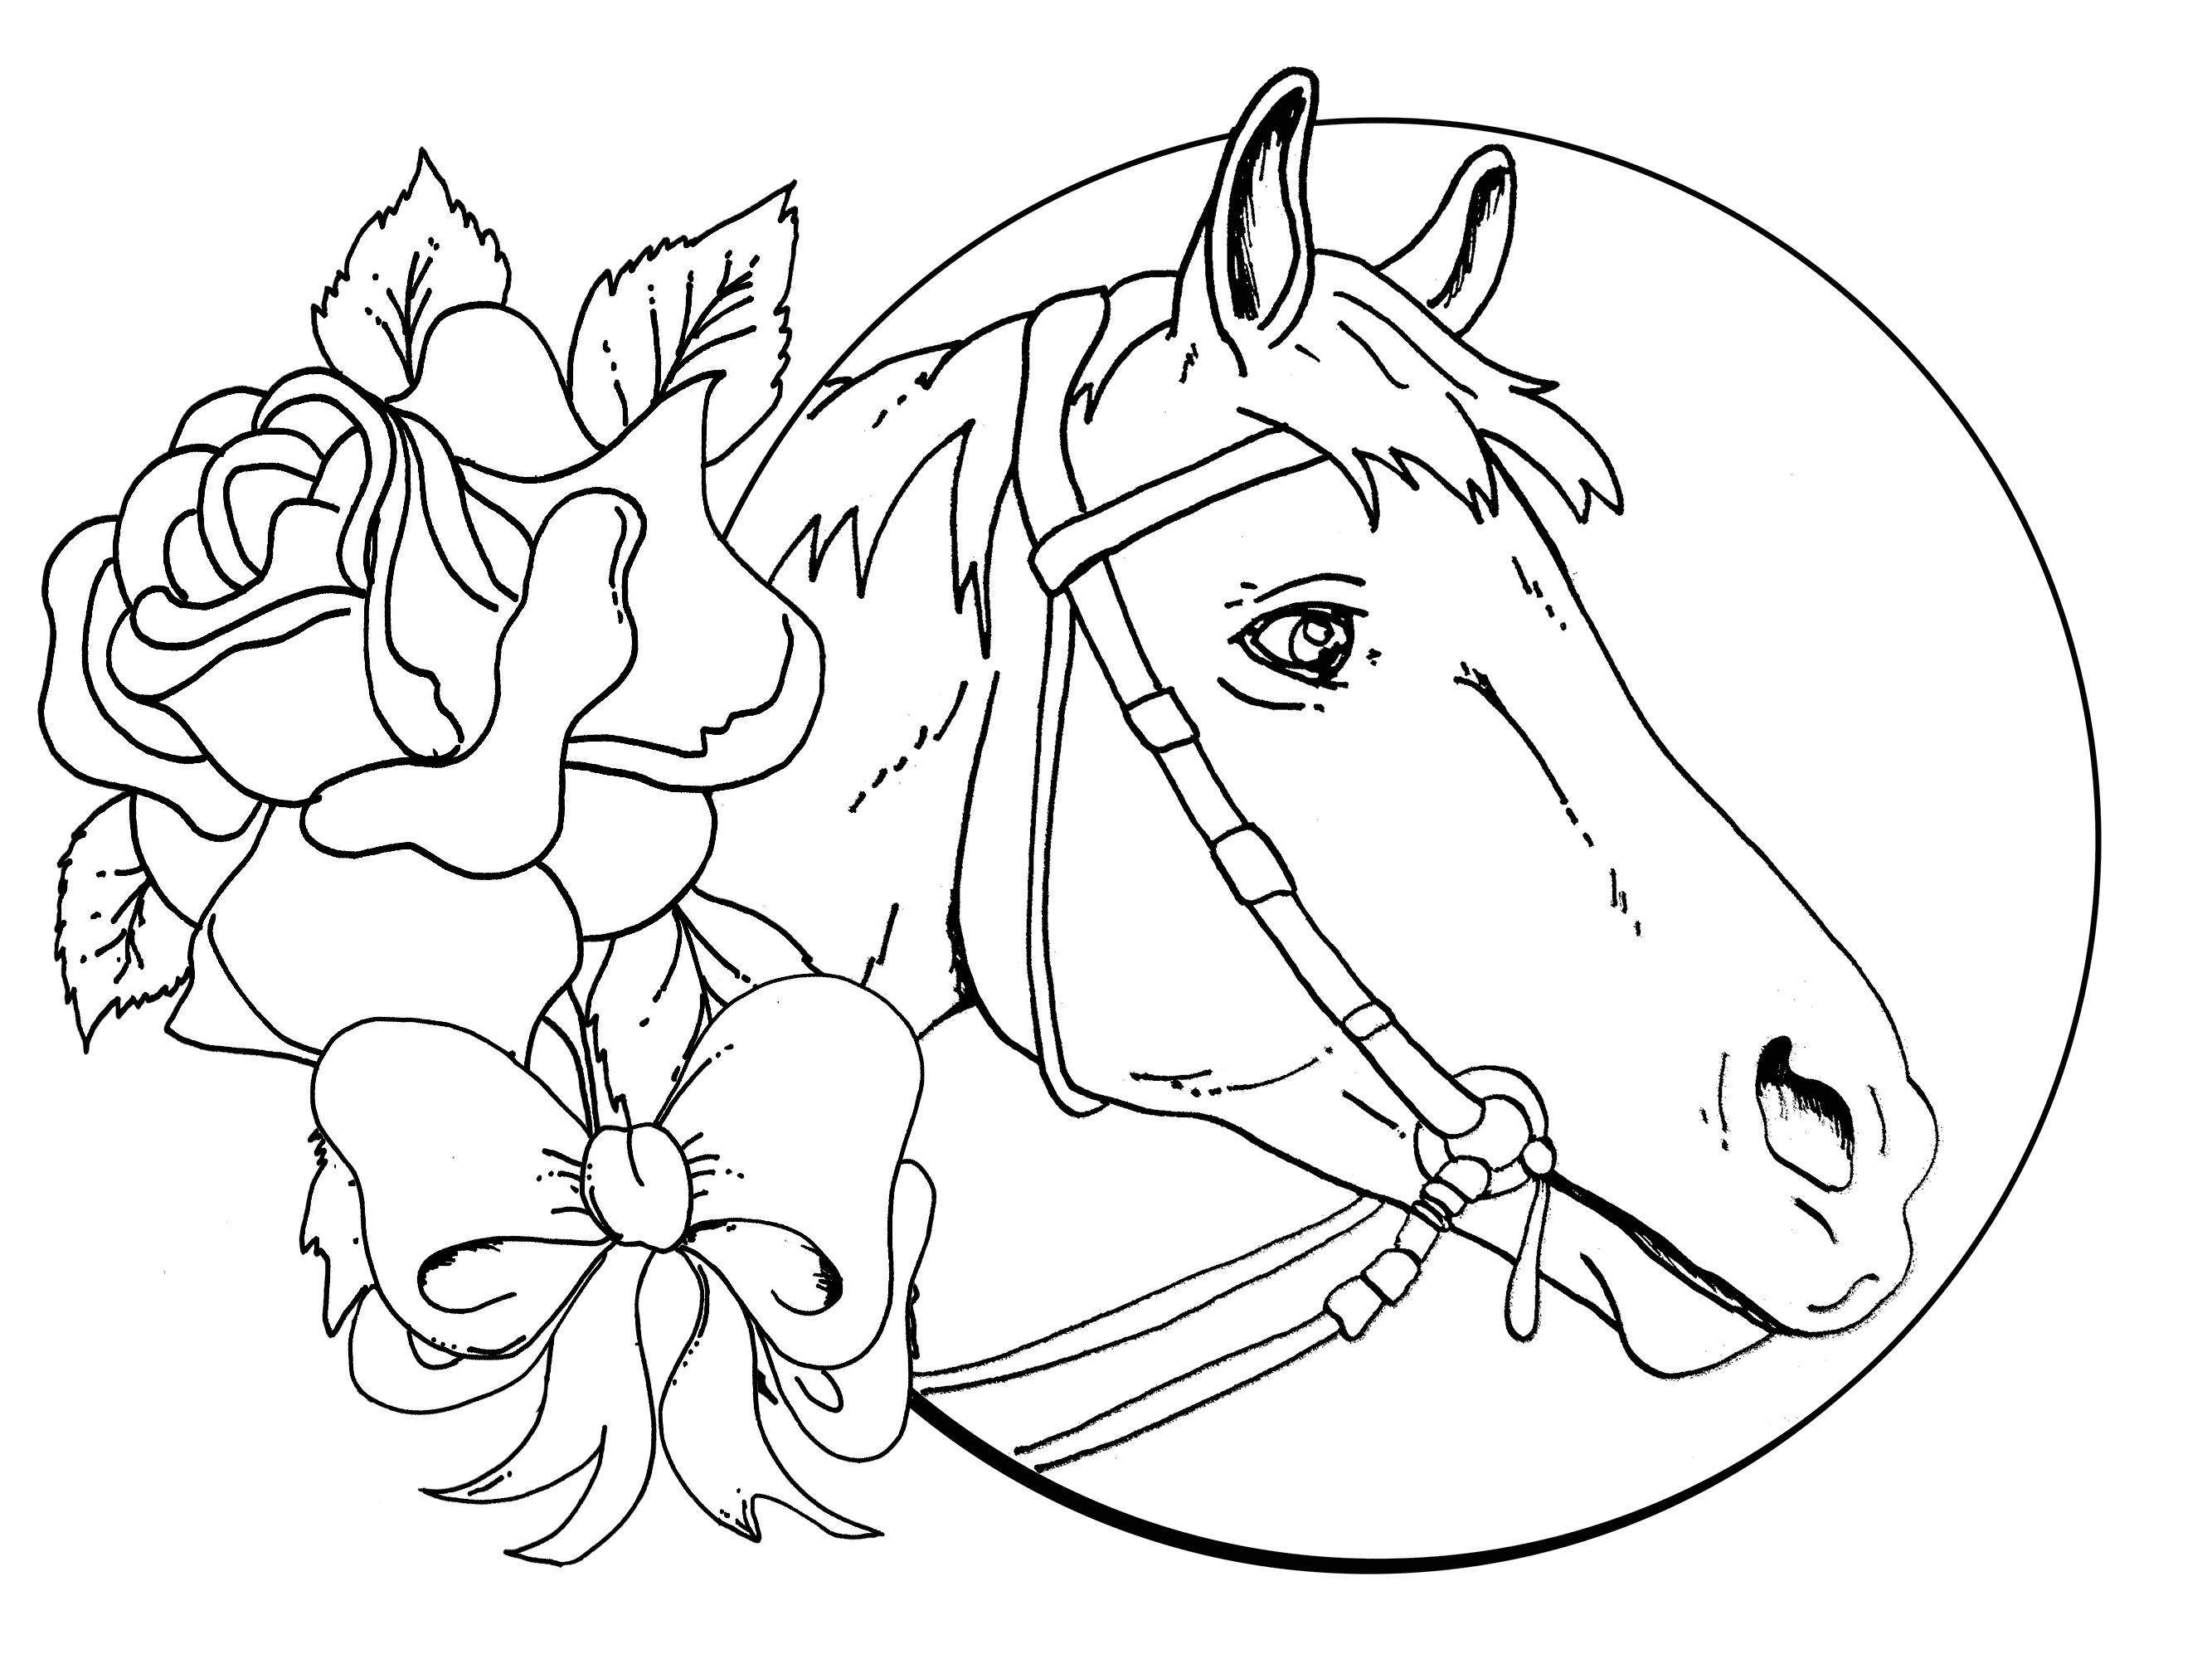 Coloring-Pages-For-Teenagers-Girls-Free